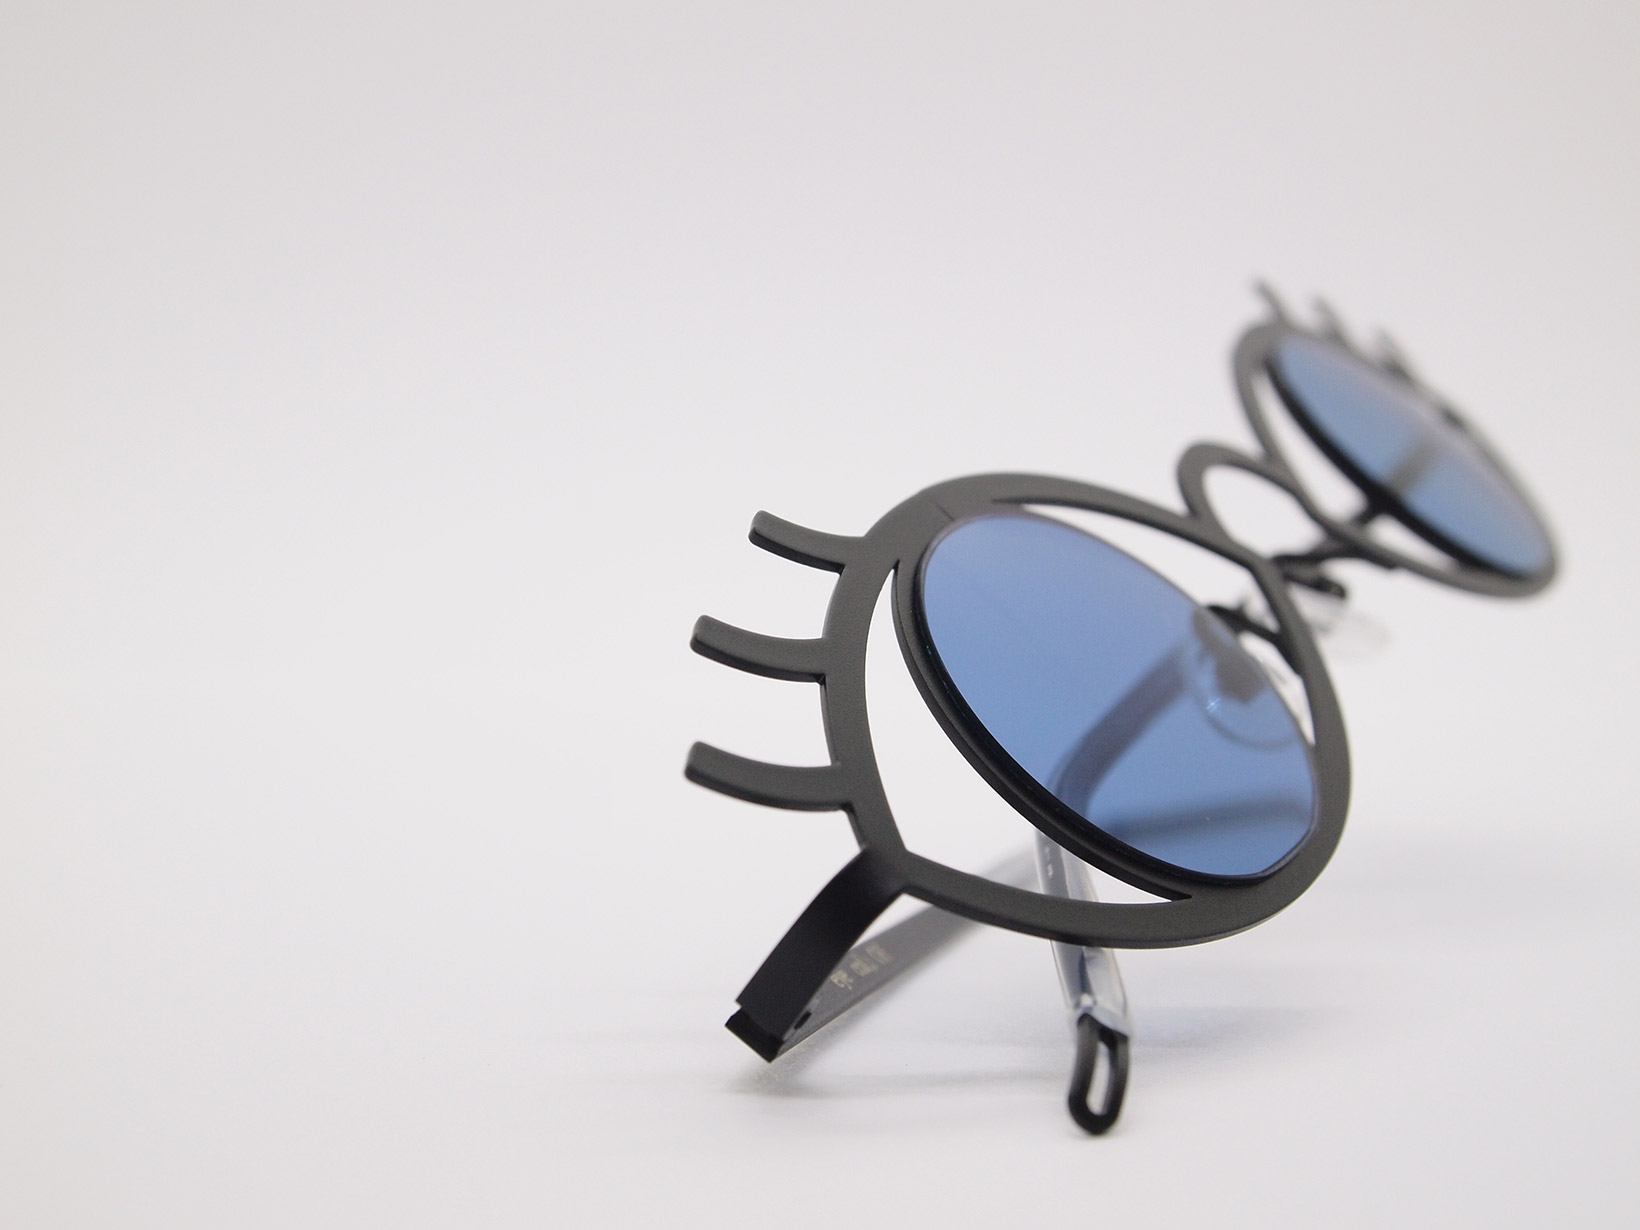 AKITTO 2021-4th eye color|col1 size:30□40 material:stainless steel price:¥39,160-(税込み)